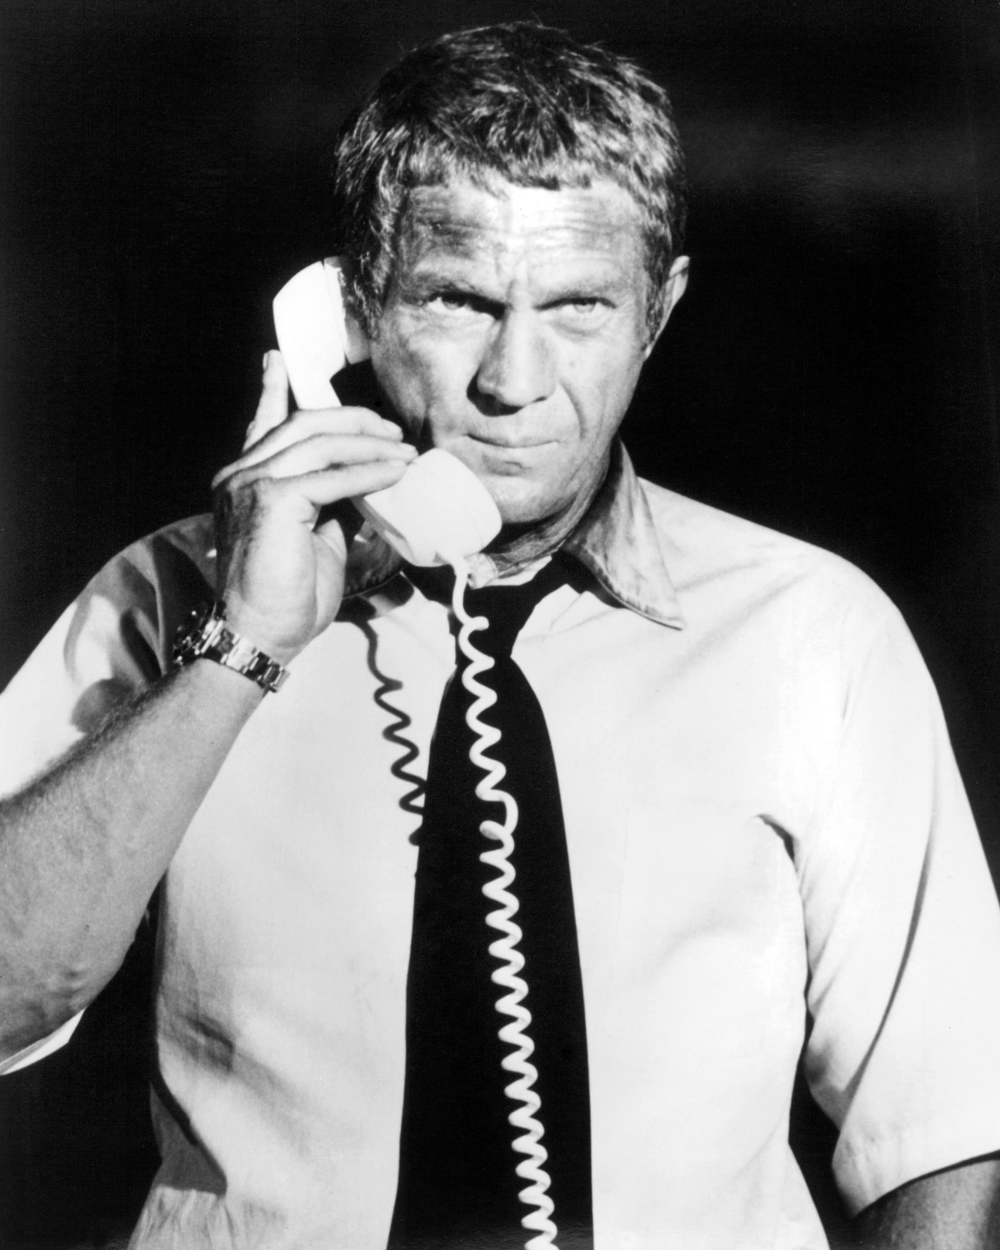 <p><strong>Rugged actor Steve McQueen frequented Sebring's Beverly Hills salon and became Markham's client and personal friend. (Getty Images)</strong></p>